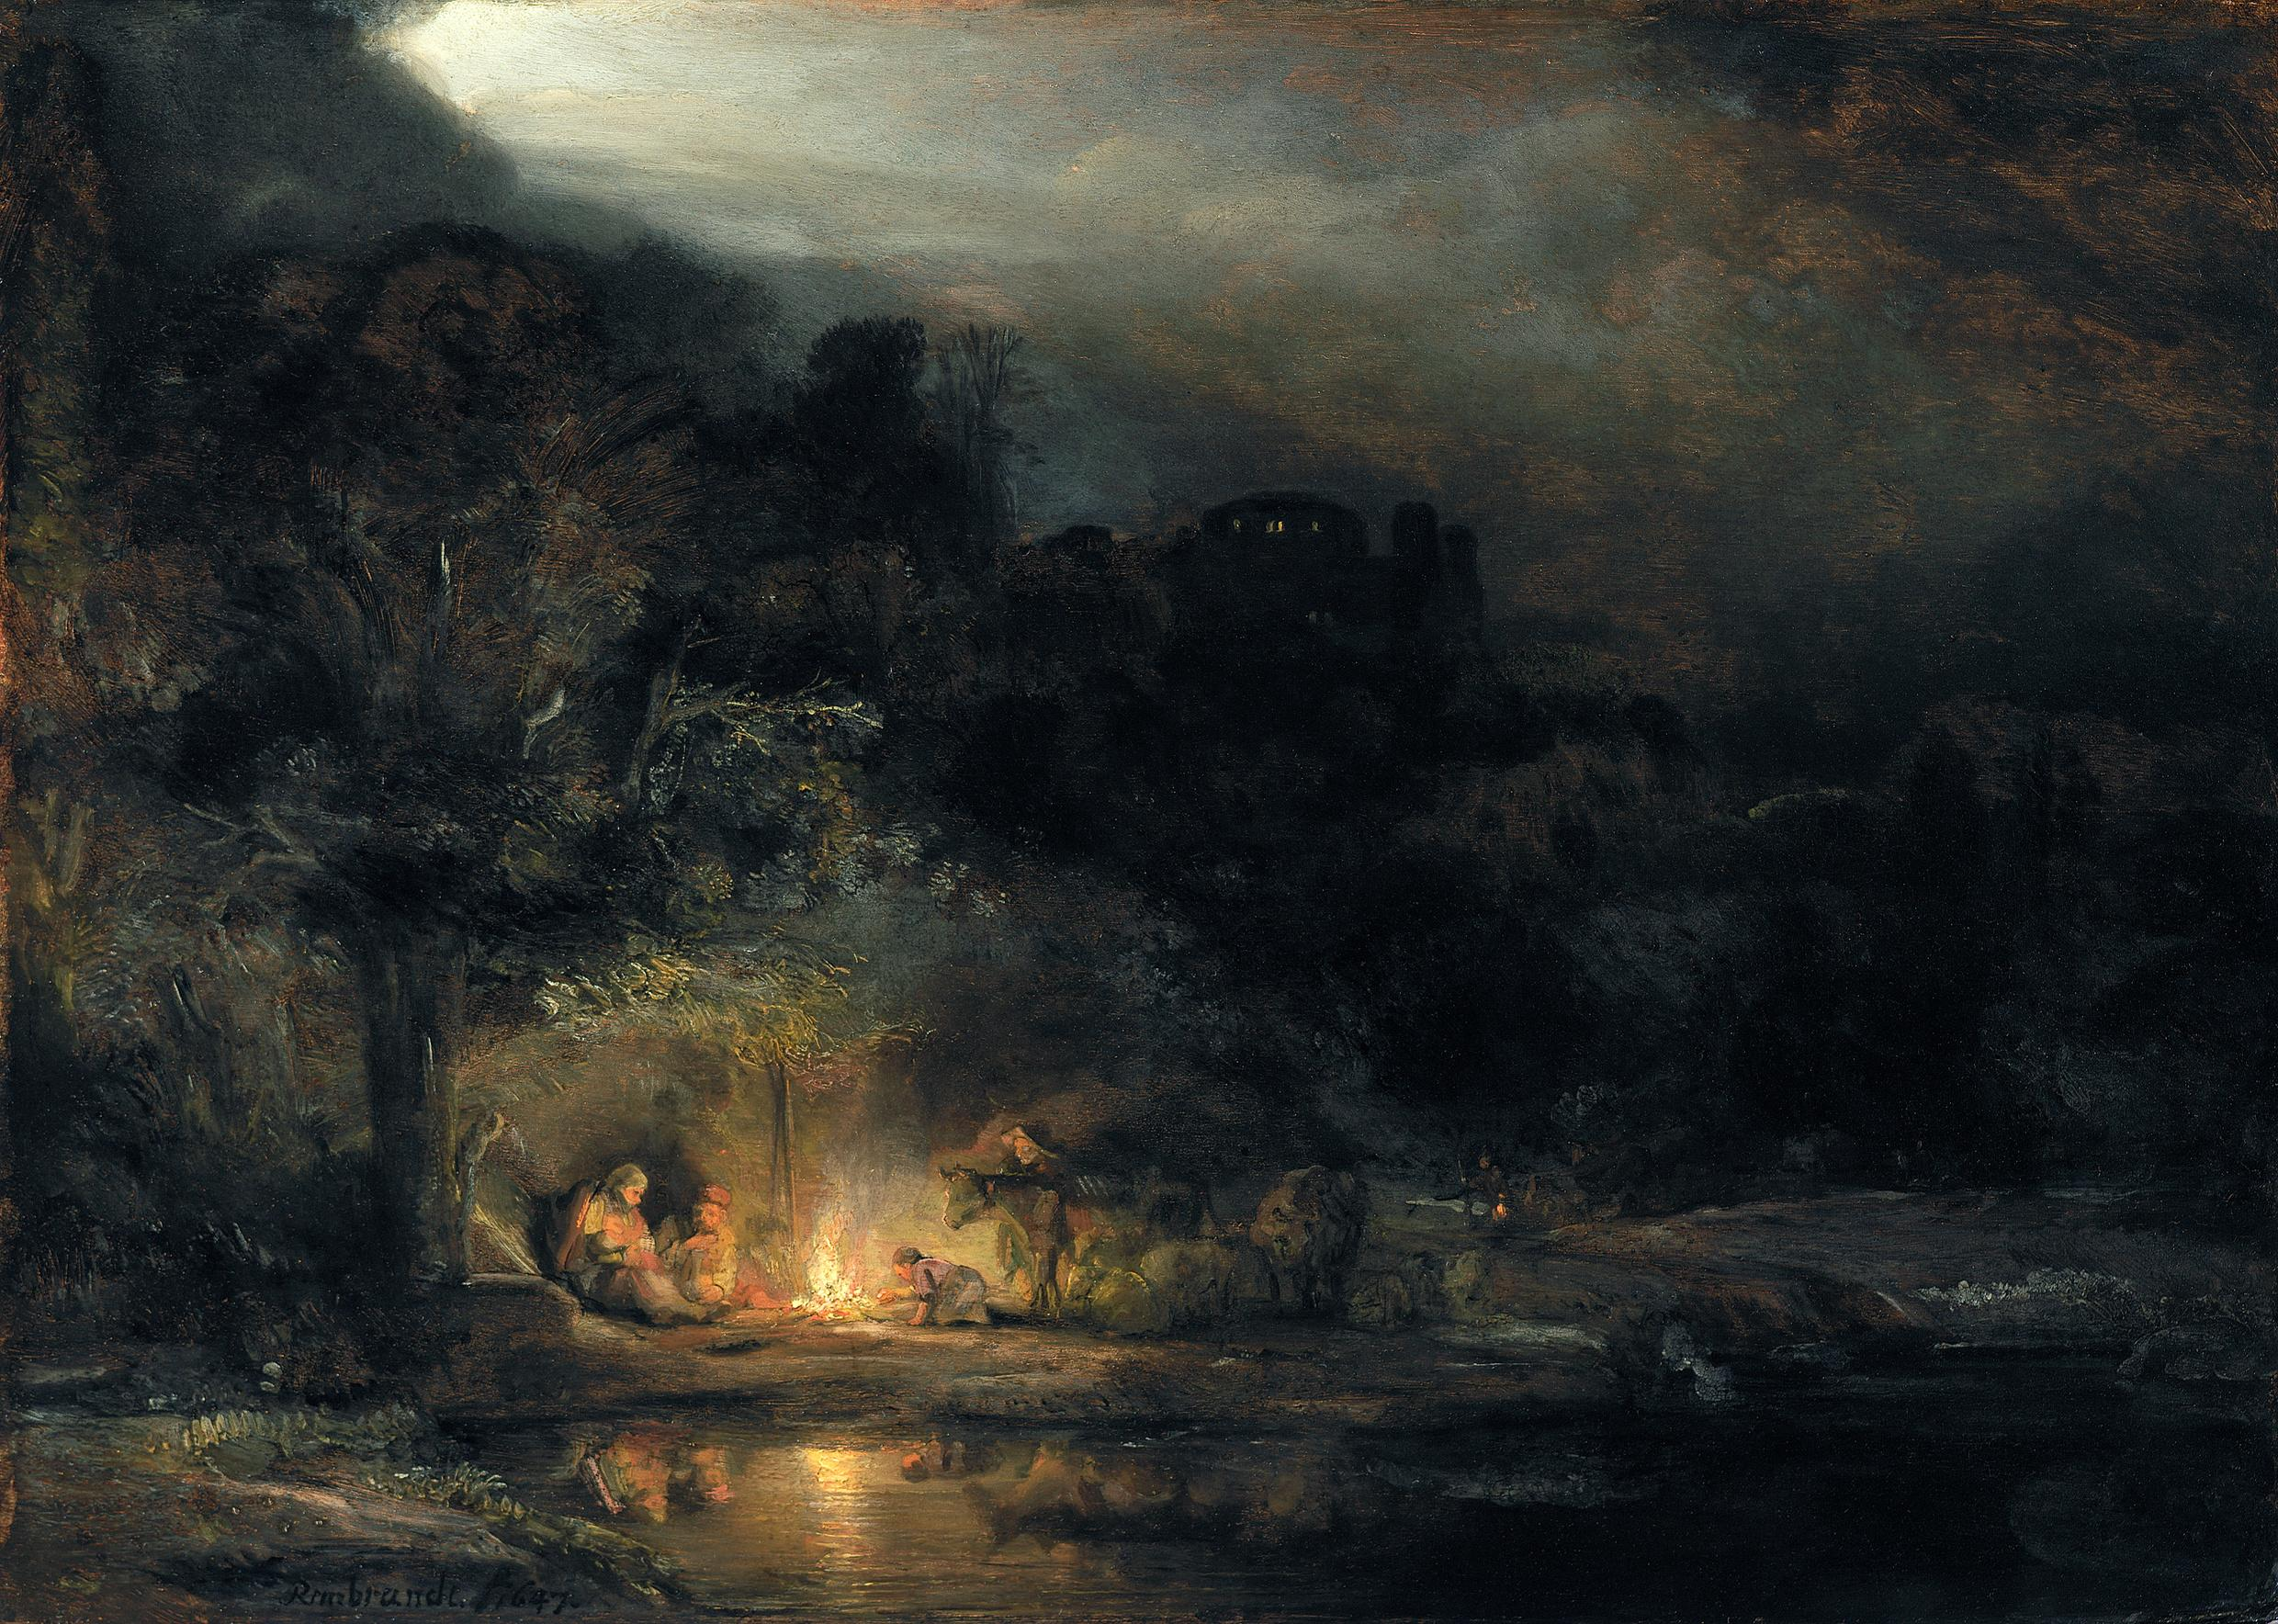 Rembrandt's Light review – glorious art needs no gimmicks